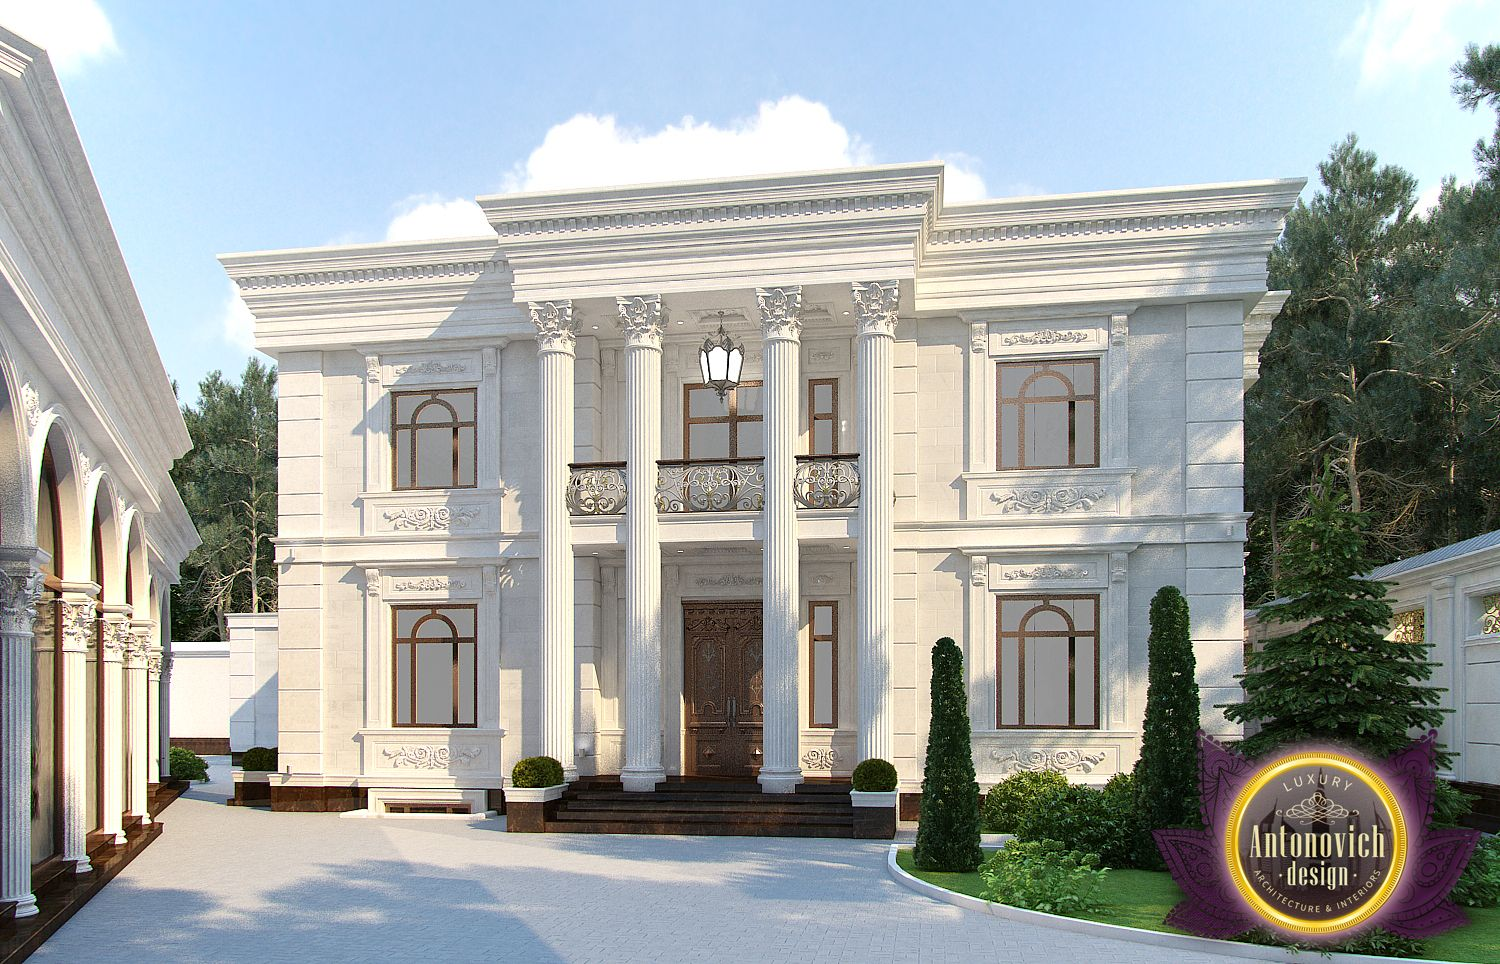 Luxury antonovich design uae architectural design from for Luxury homes architecture design